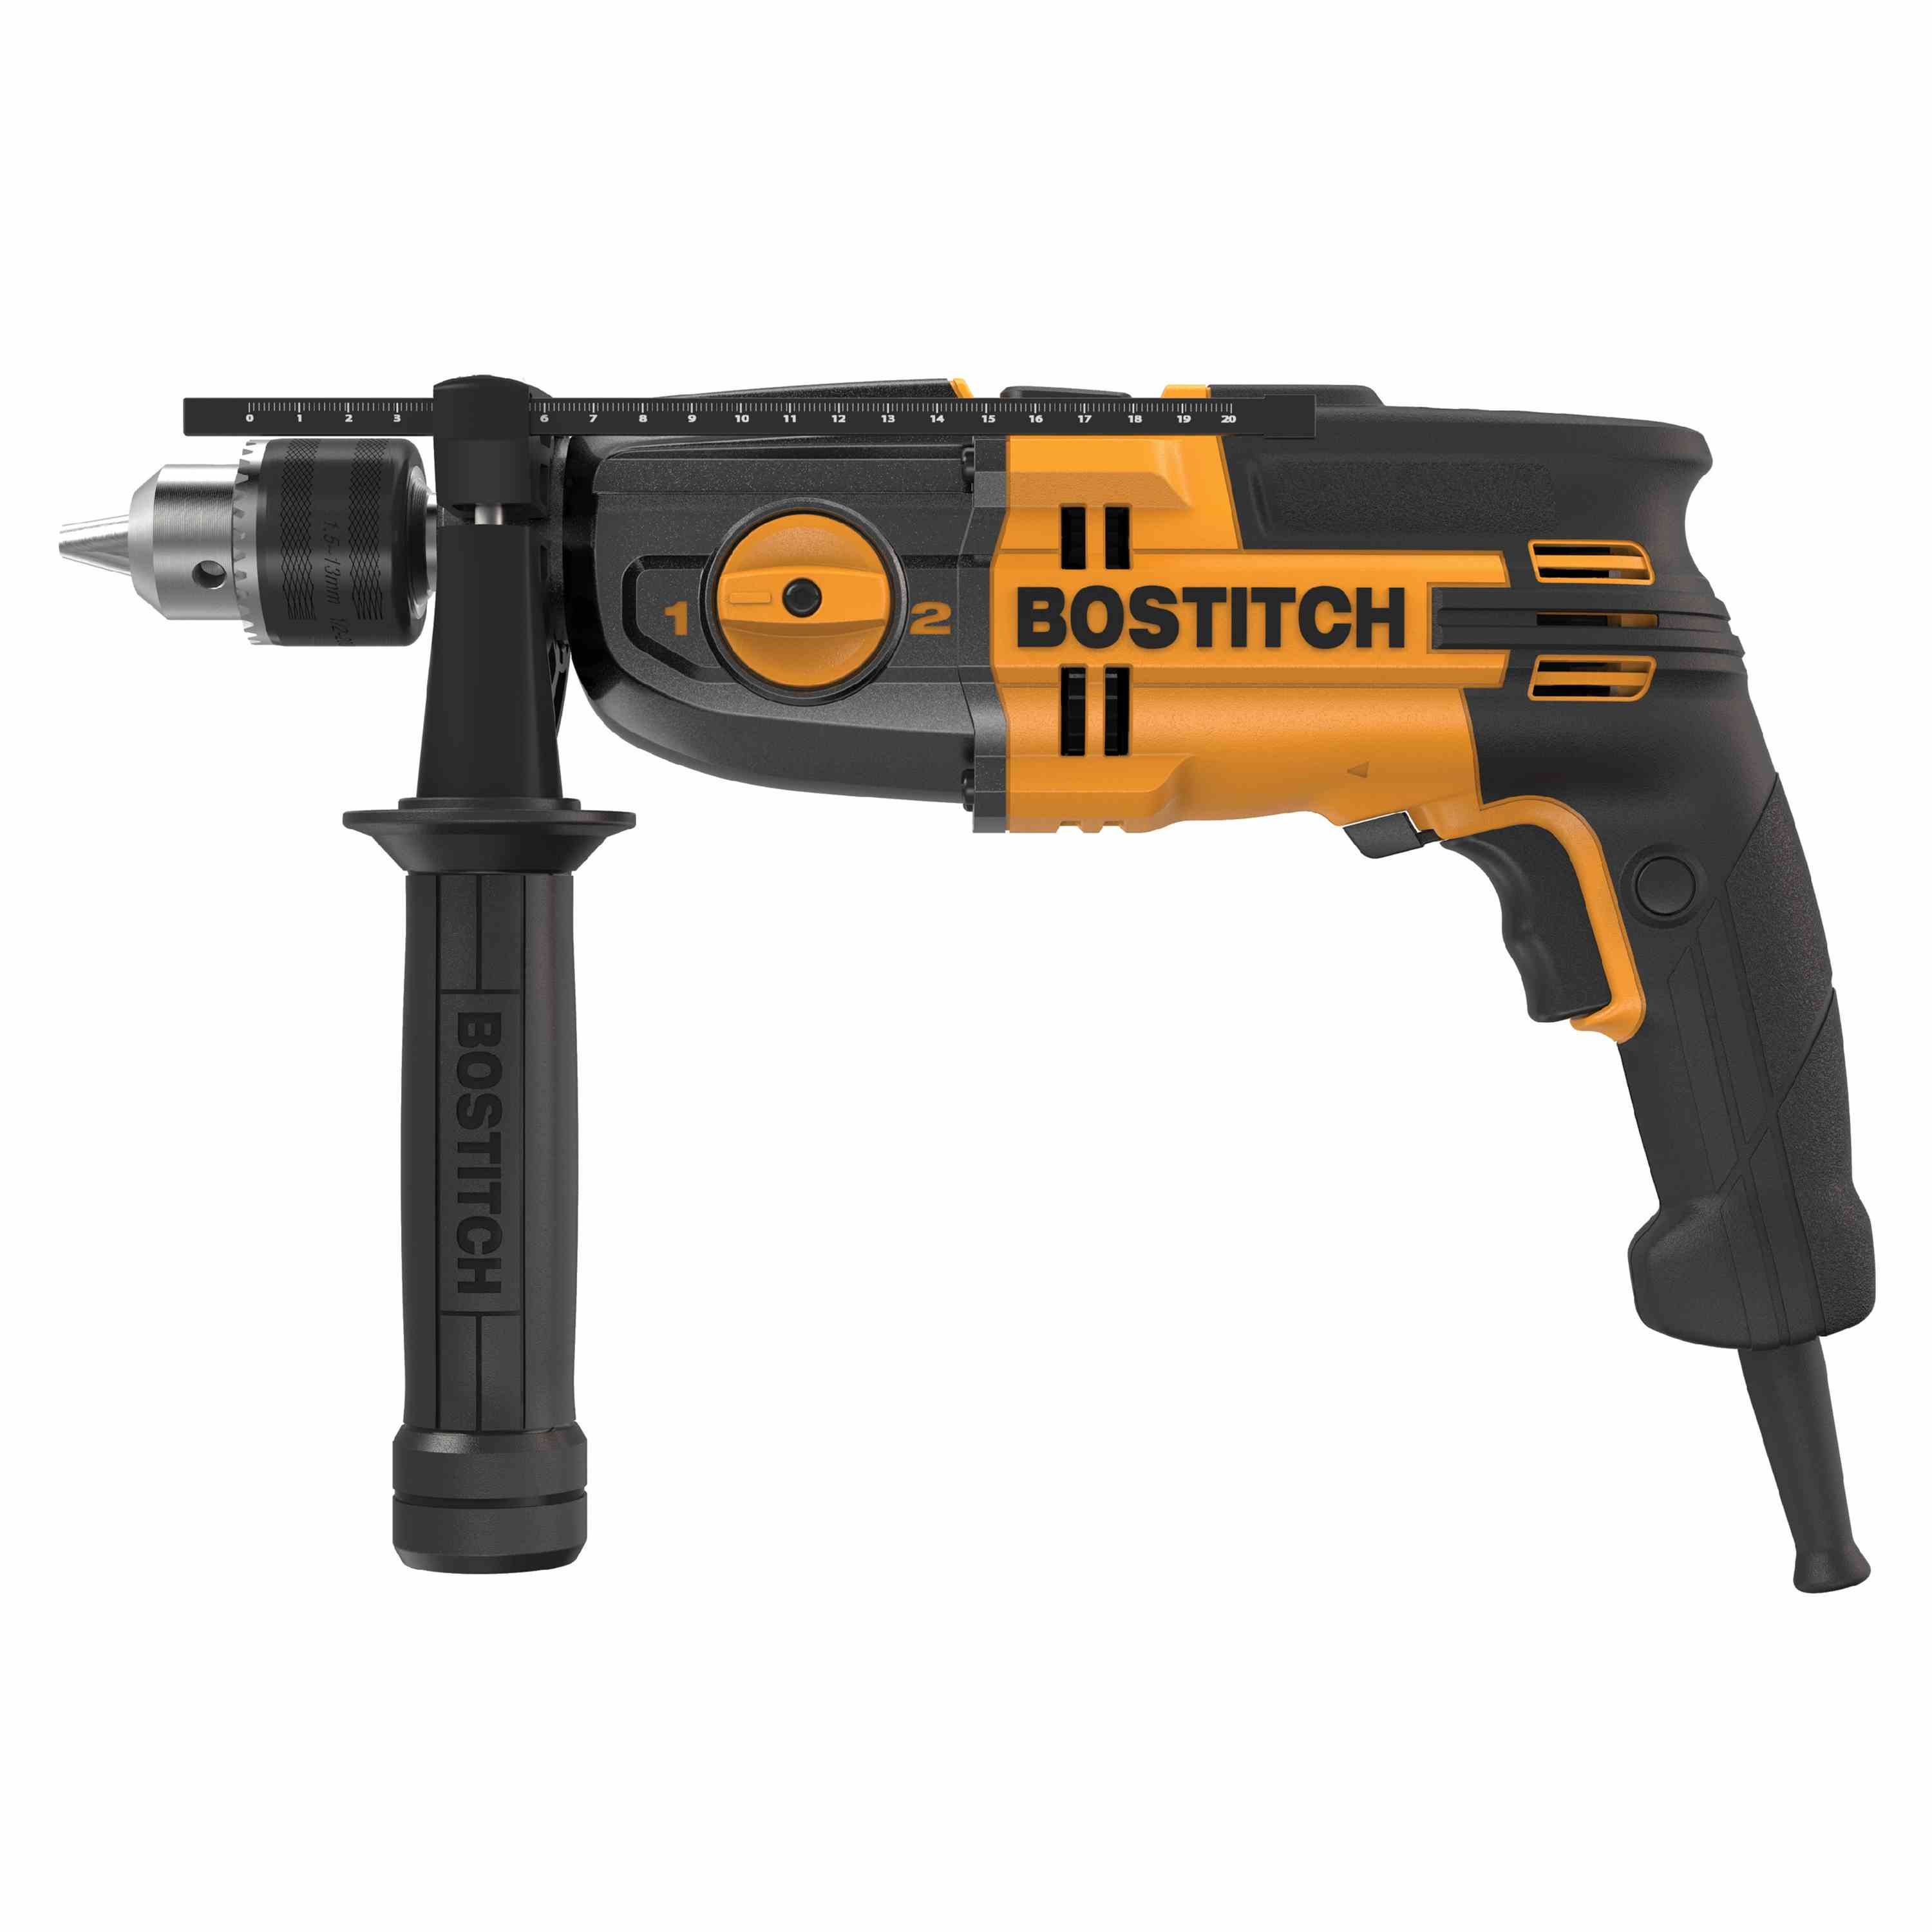 Bostitch - 7 Amp 12 VSR 2 Speed Hammer Drill Kit - BTE140K